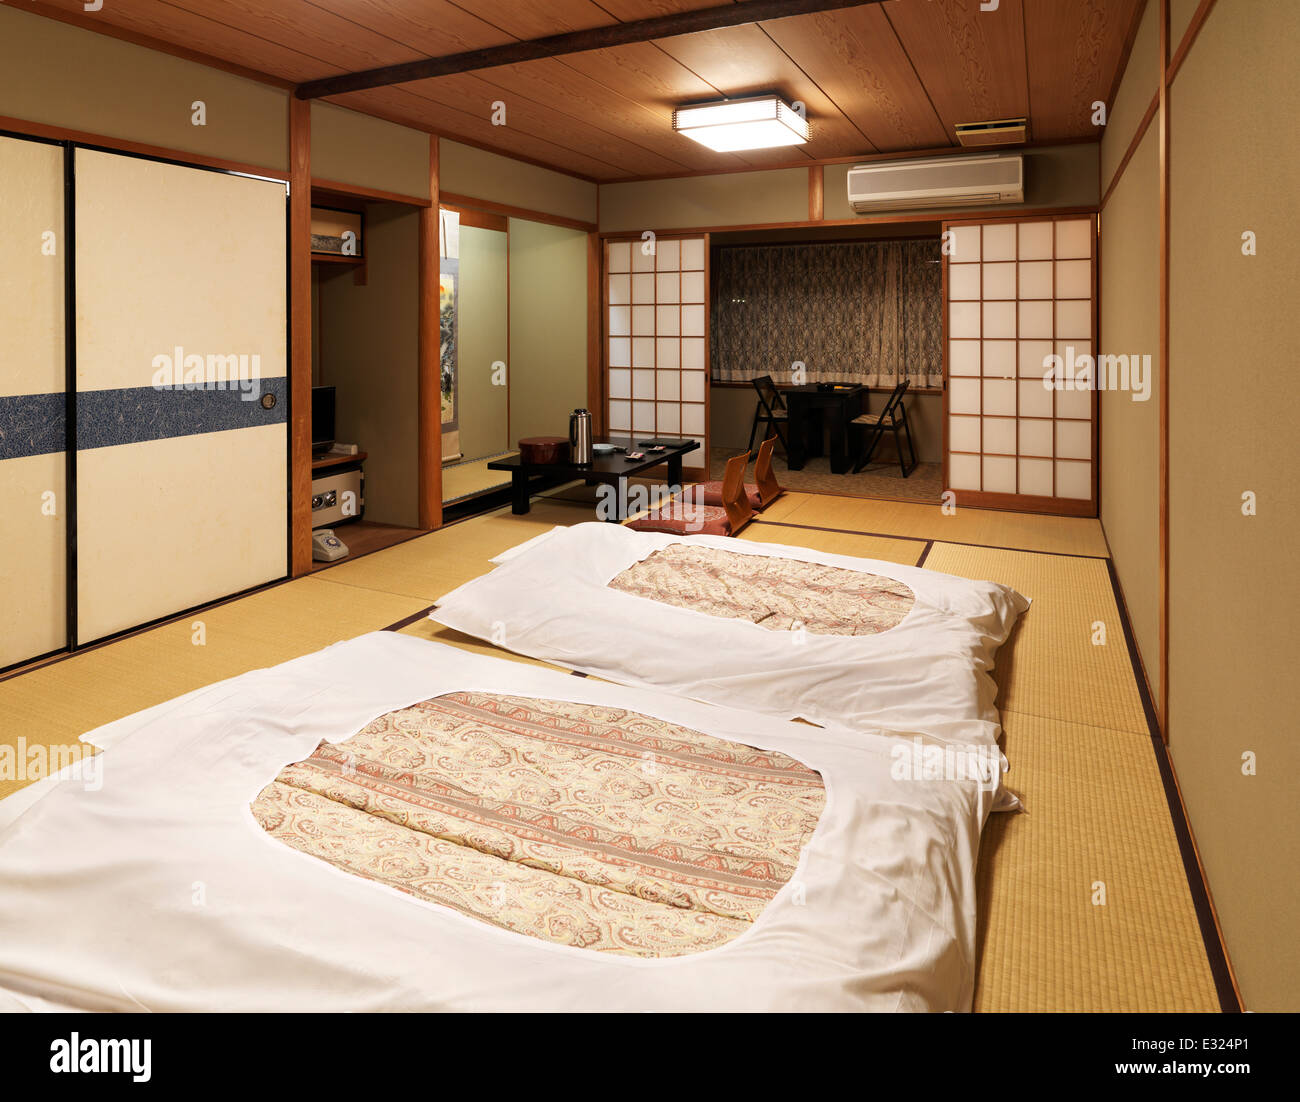 Asian Floor Mattress Traditional Japanese Room At A Ryokan With Futons On The